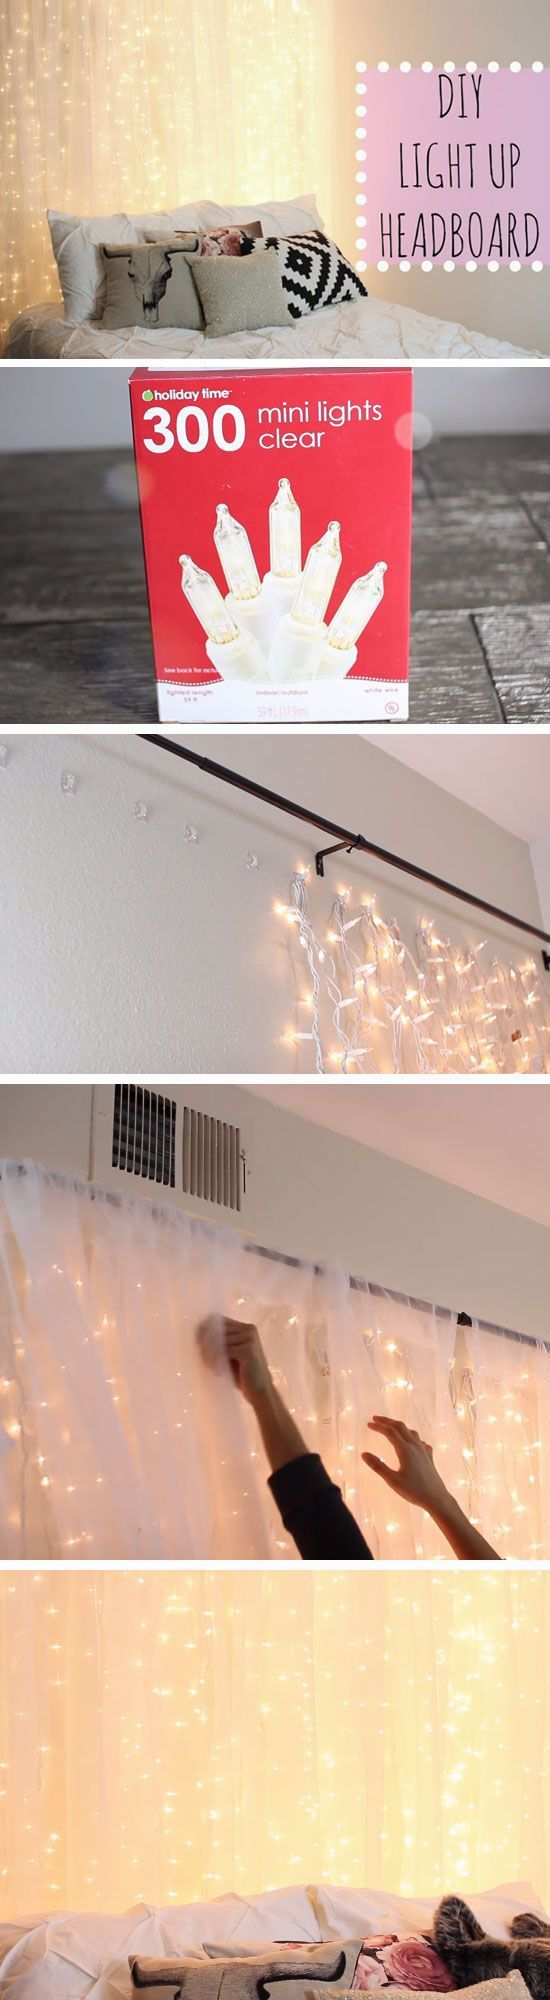 best 25+ diy decorating ideas on pinterest | diy house decor